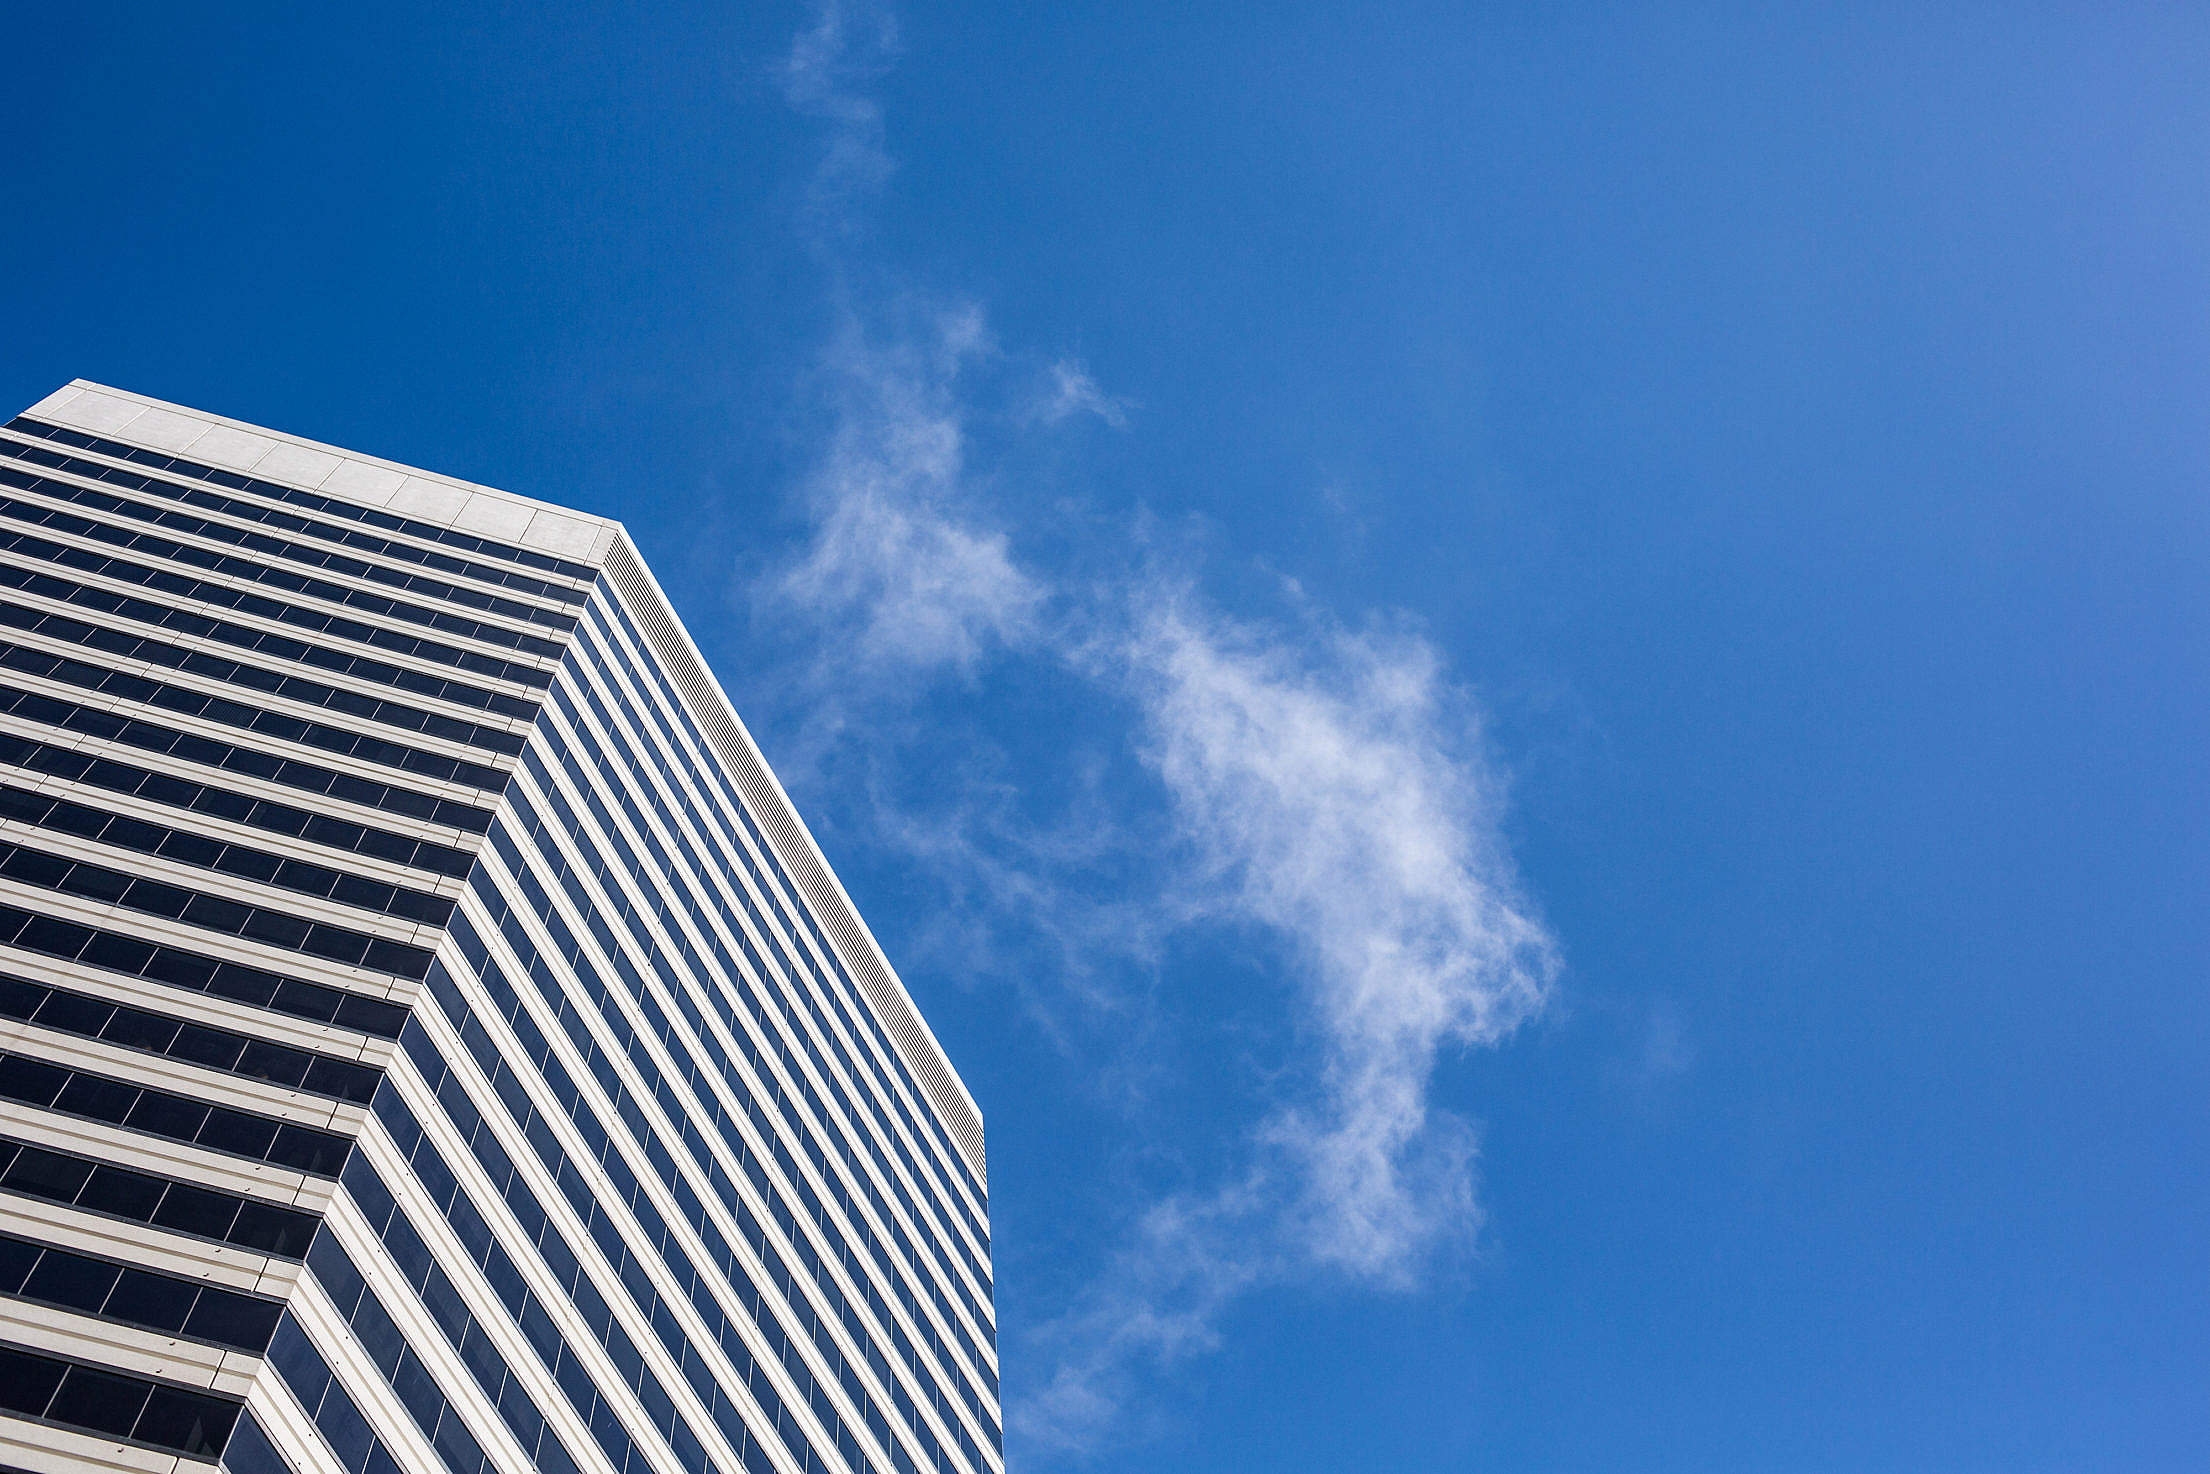 Clean Skyscraper View from Below Against a Blue Sky Free Stock Photo